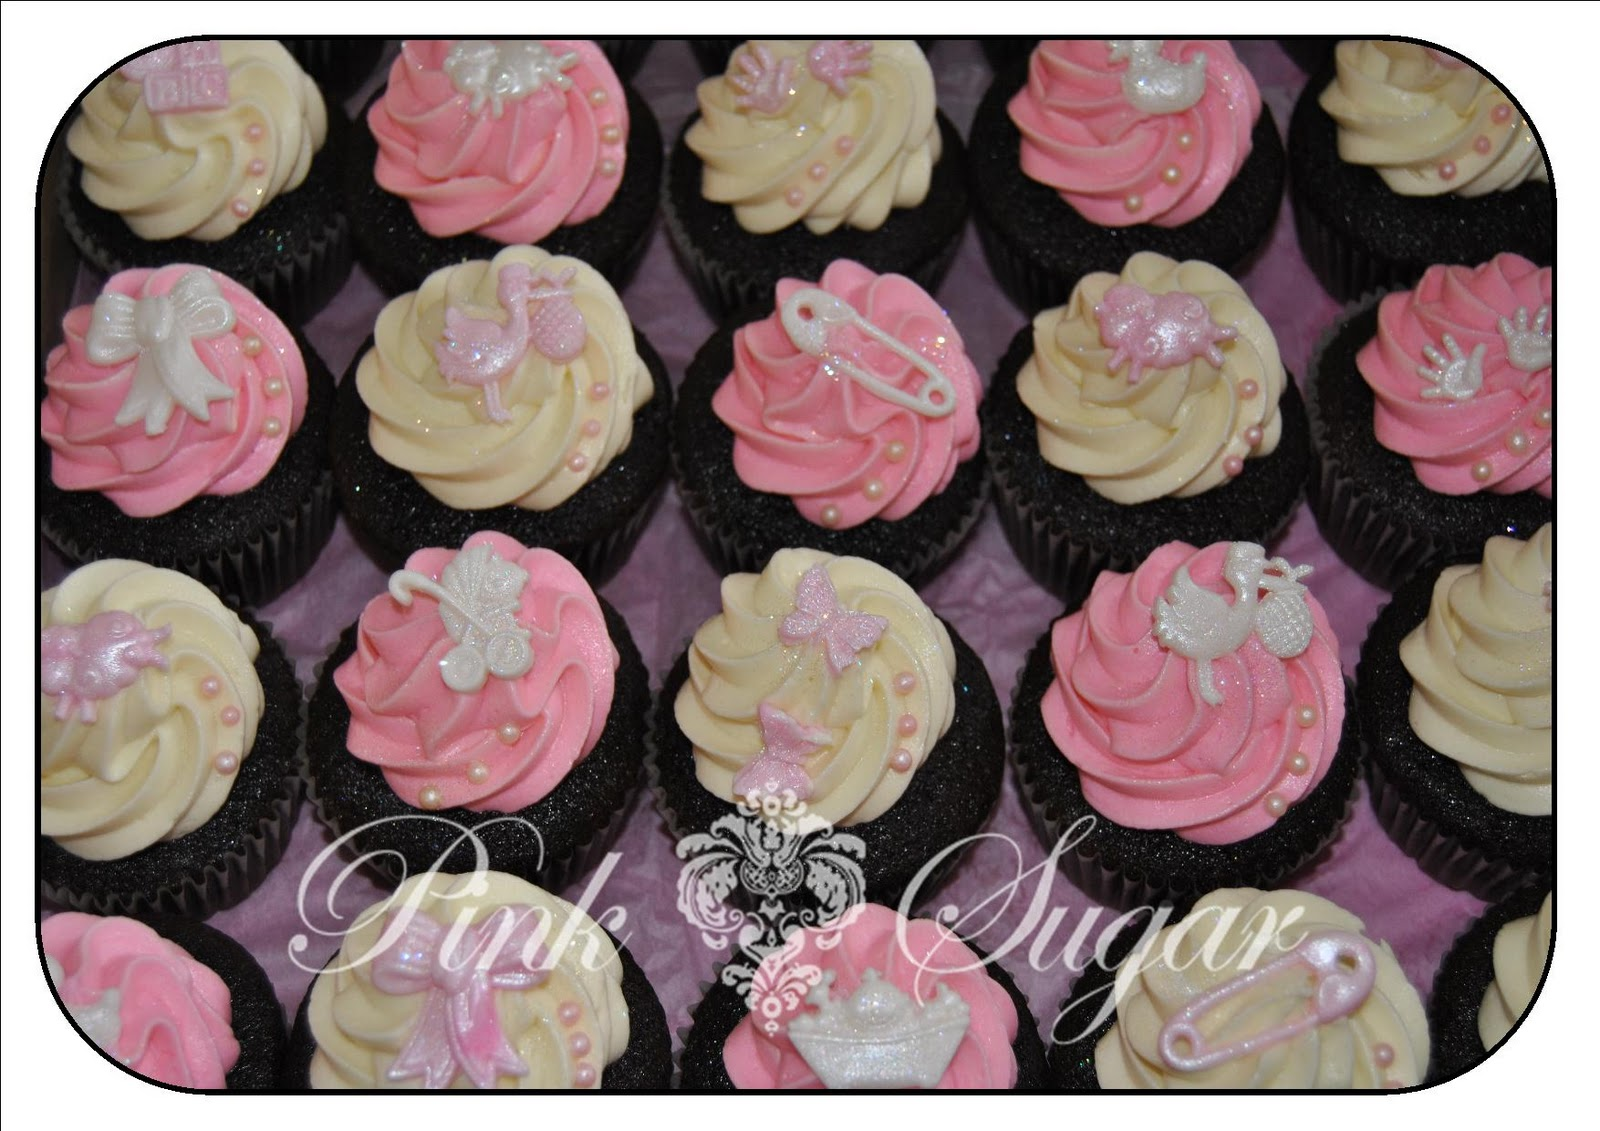 Baby shower cupcakes - Girl baby shower cupcake ideas ...